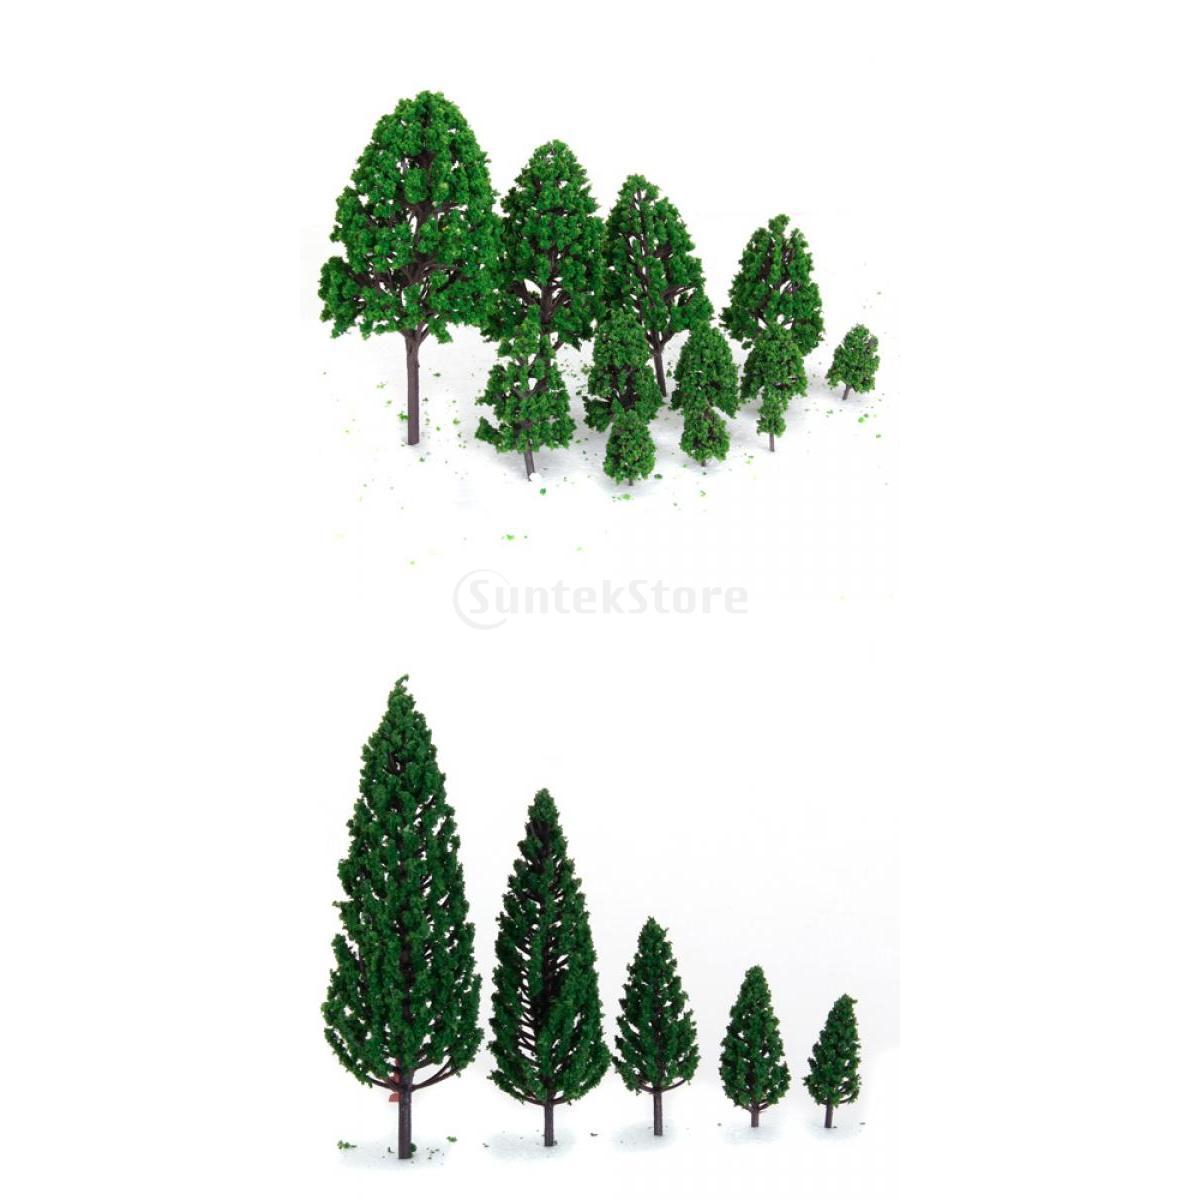 2015 Brand New 22 Green Model Trees Train Railways Architecture War Game Scenery Layout 3-16 cm - Bling Fashion store